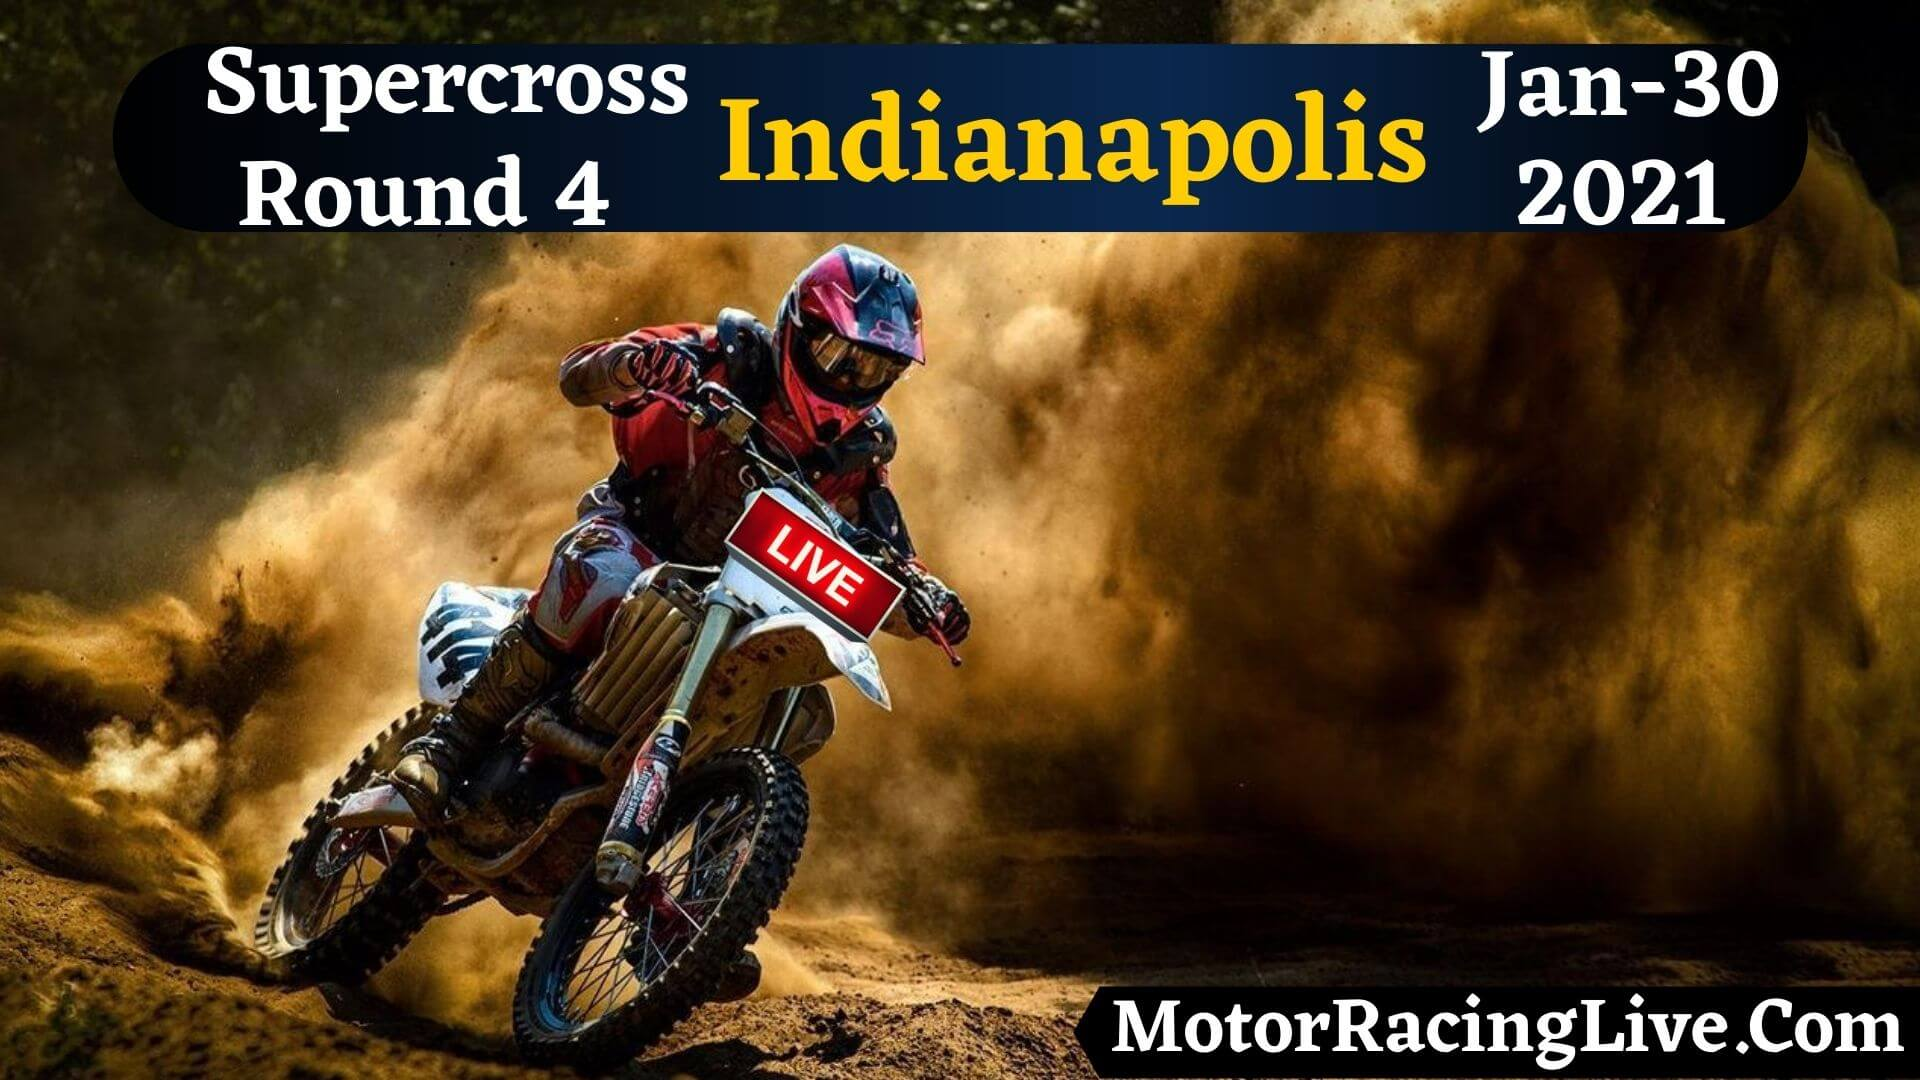 Supercross Indianapolis Round 4 Live Stream 30-Jan 2021